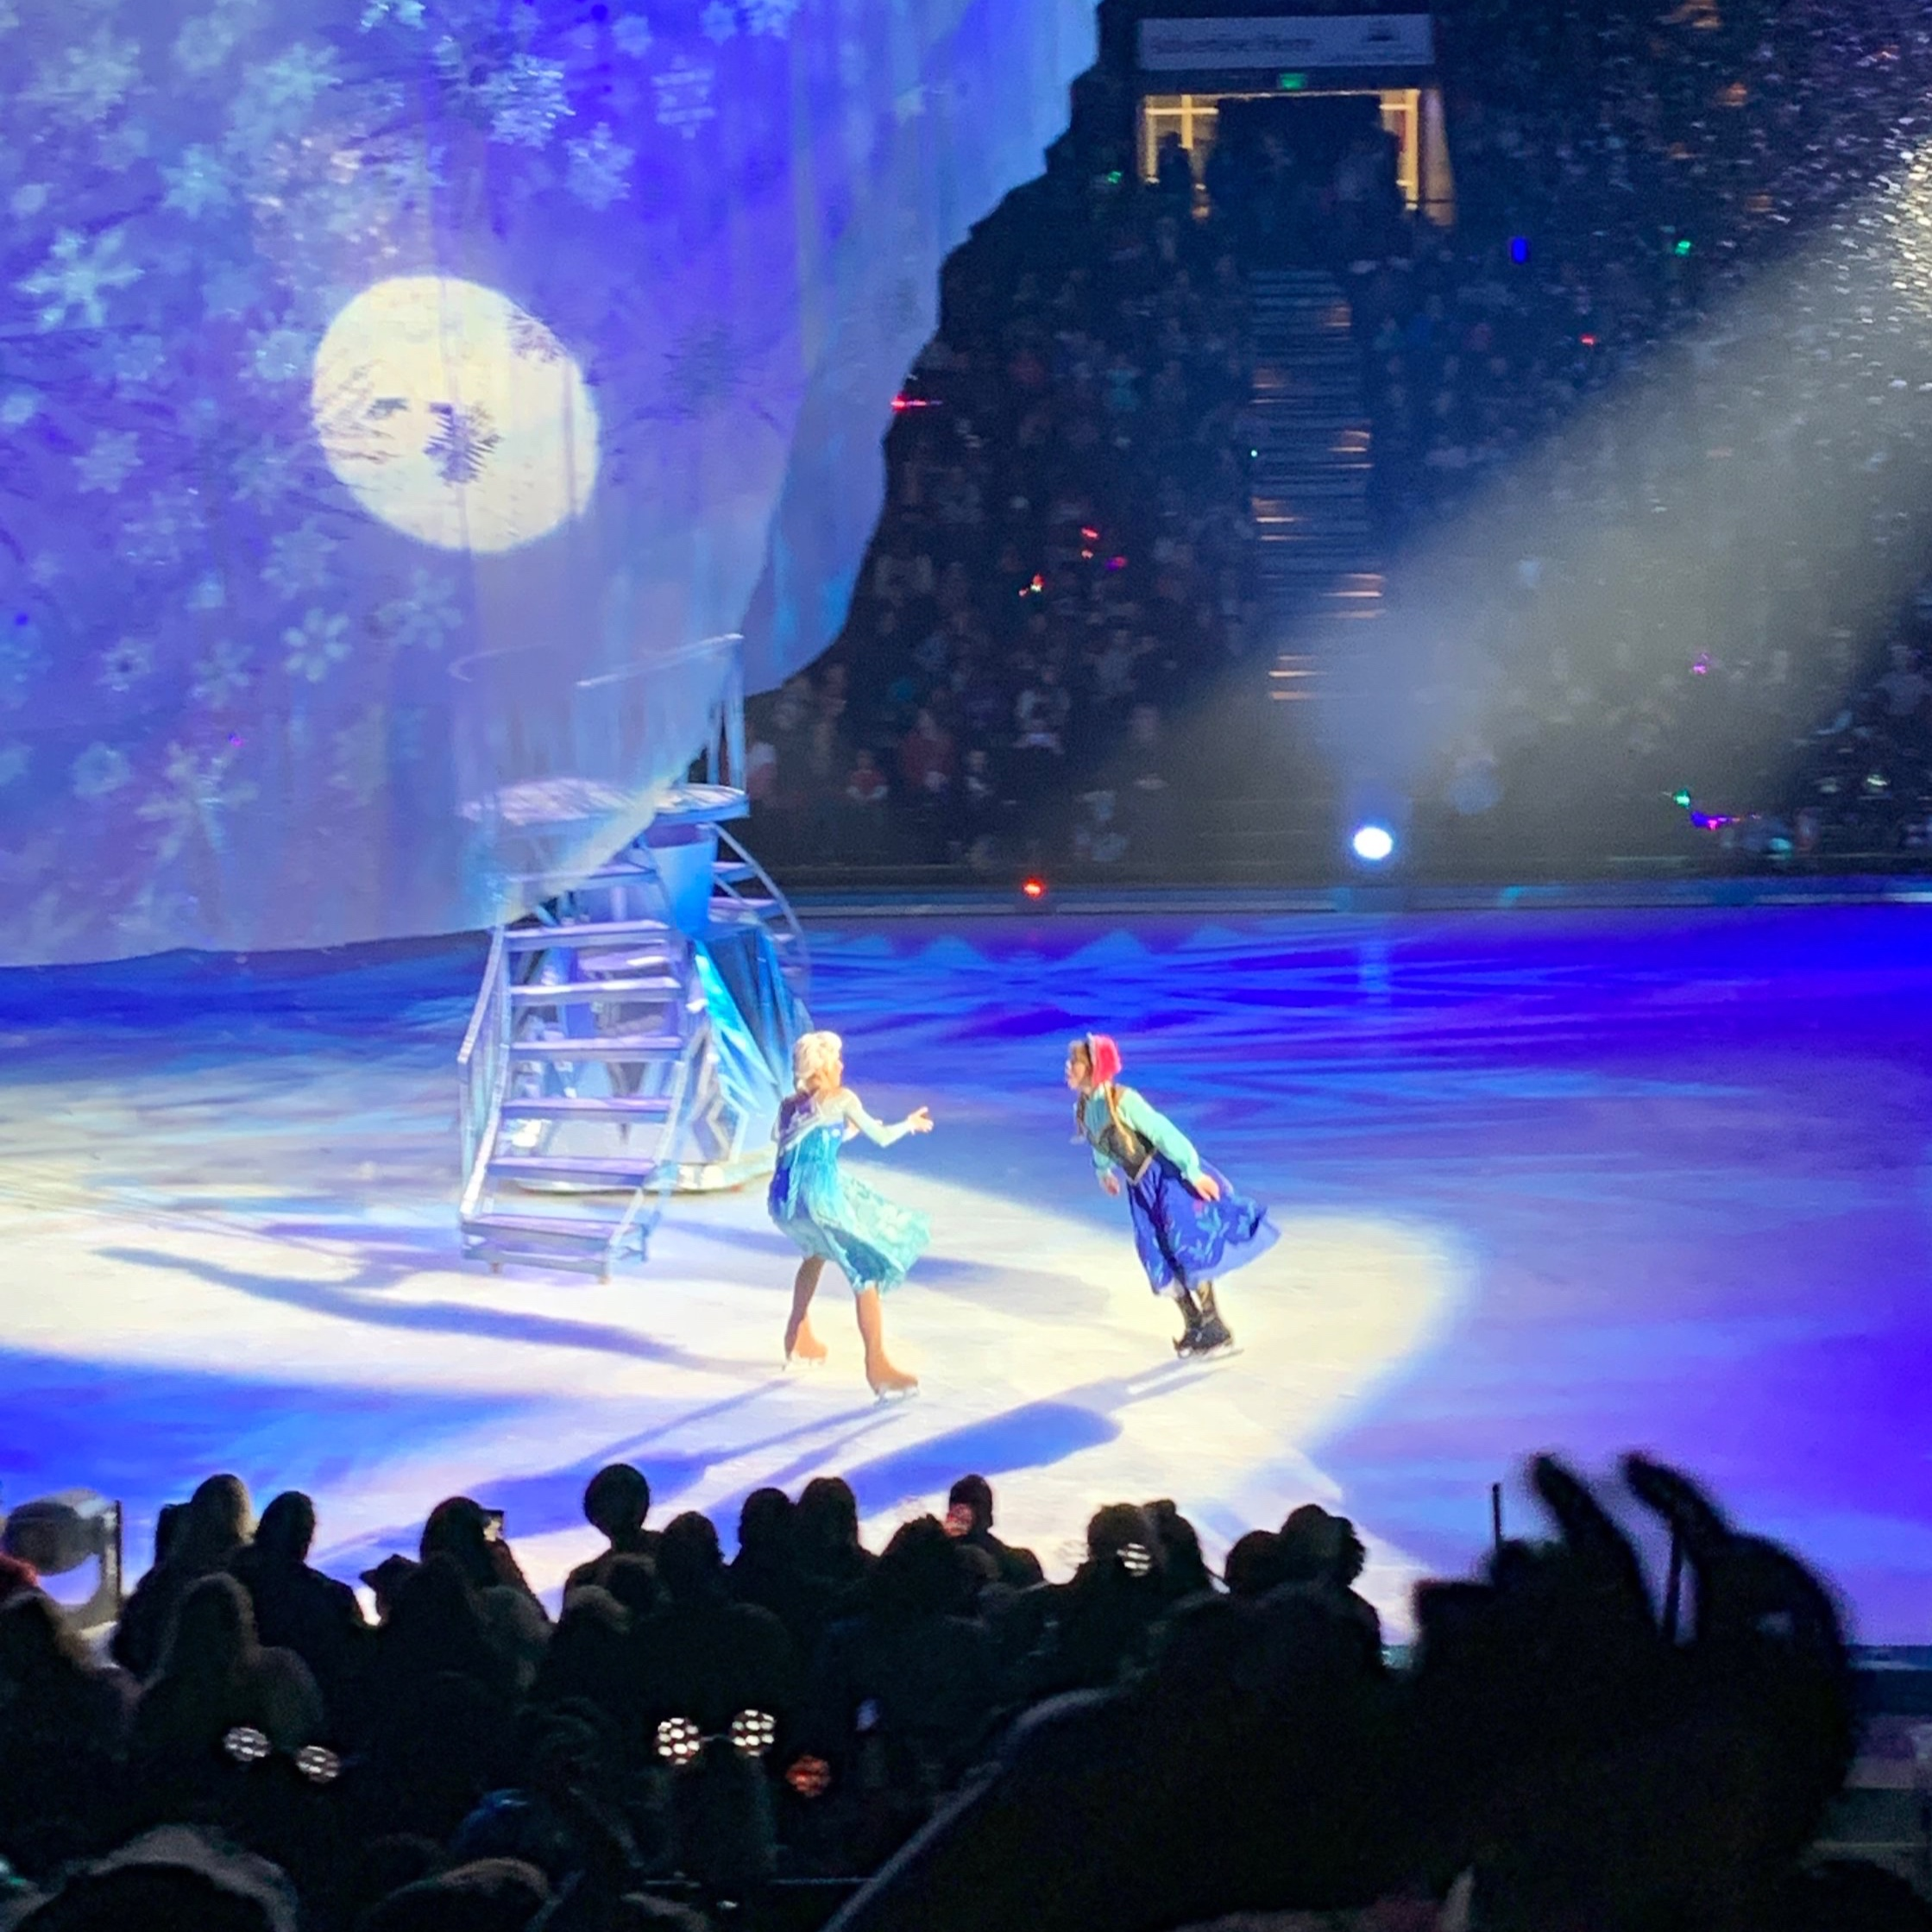 Elsa & Anna even brought snow to the arena.